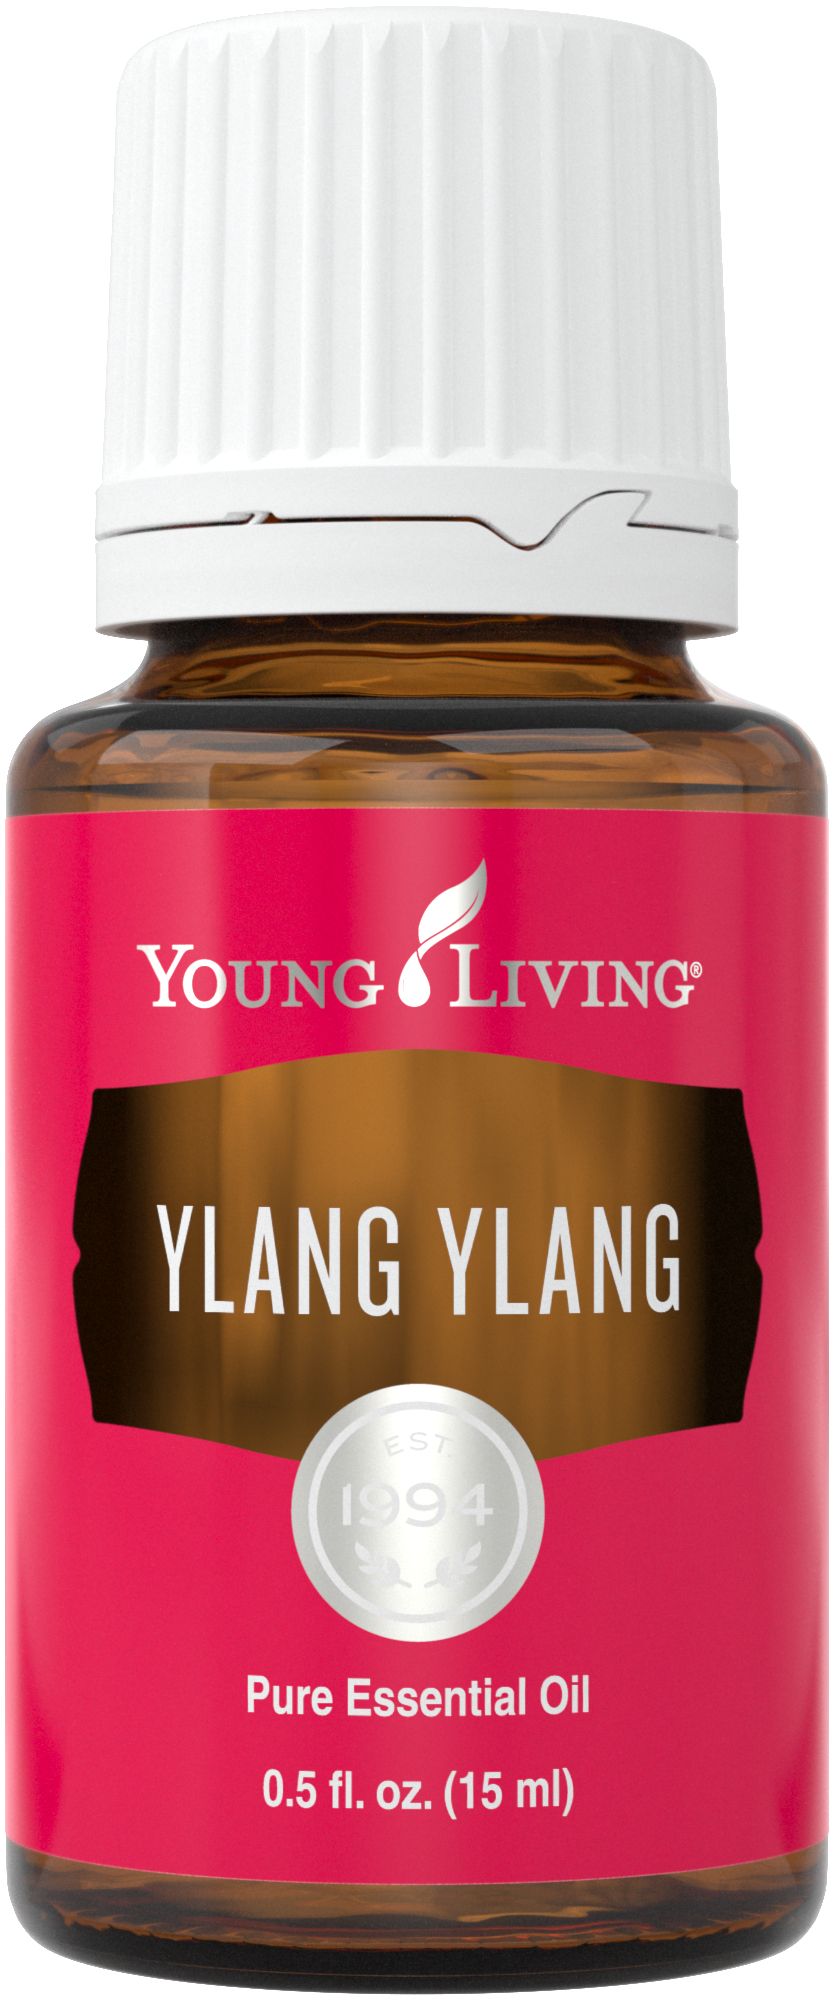 Ylang Ylang Essential Oil - young living essential oils